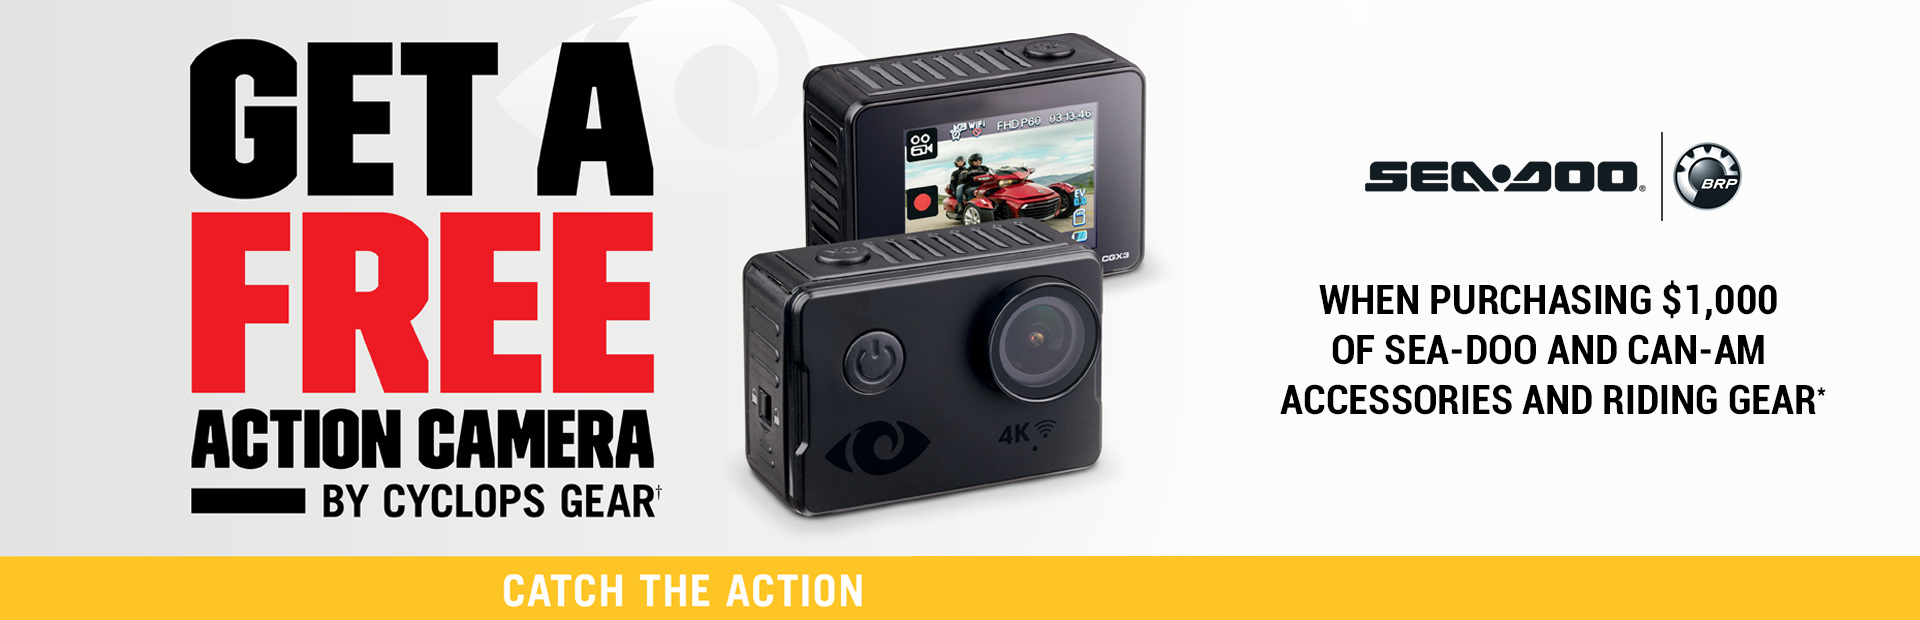 Action Camera Promotion